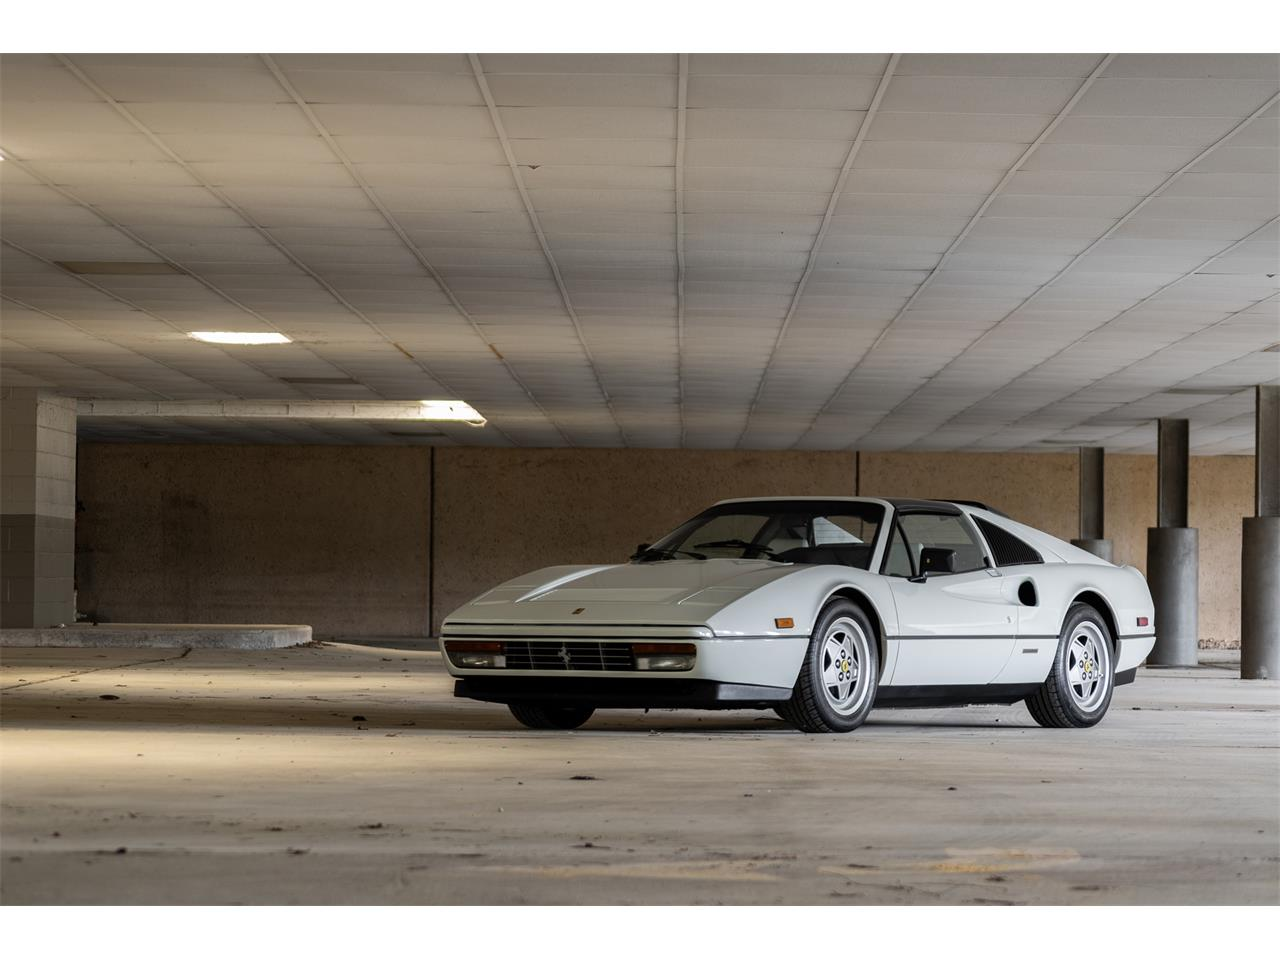 Large Picture of 1988 Ferrari 328 GTS Auction Vehicle Offered by Bring A Trailer - Q56I